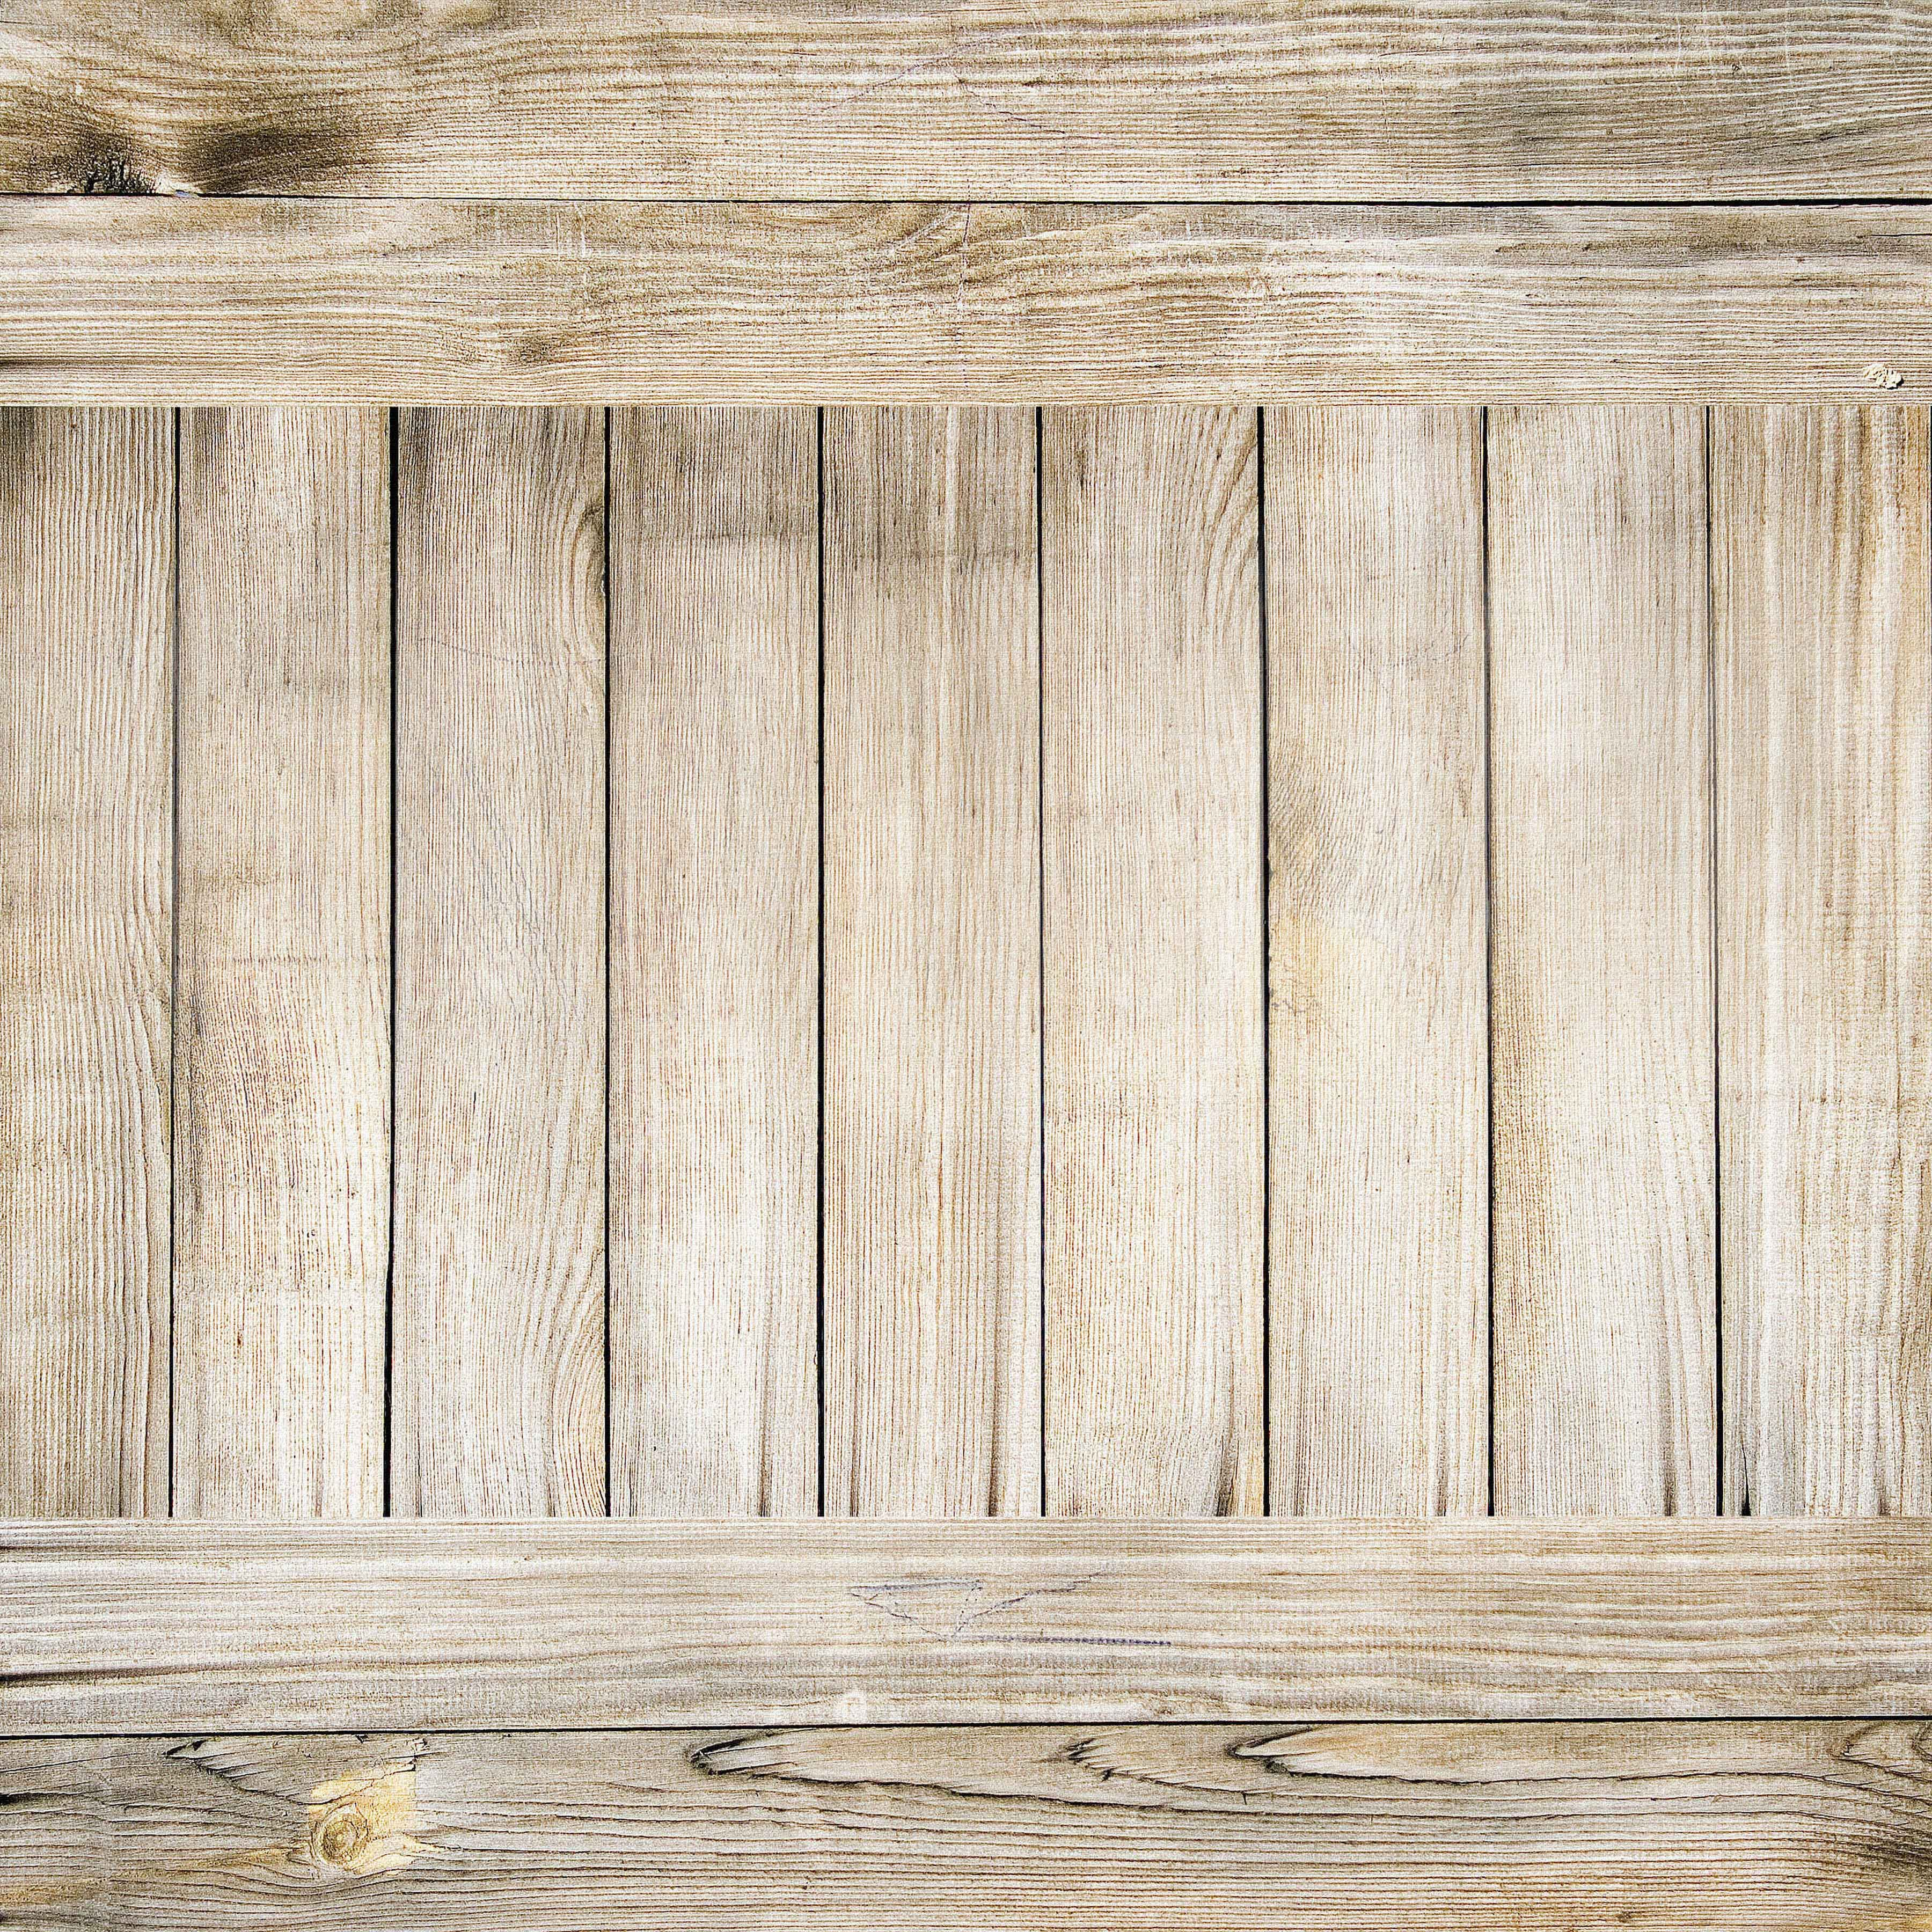 Free Wood Backgrounds 3 Wood background, Wood scrapbook